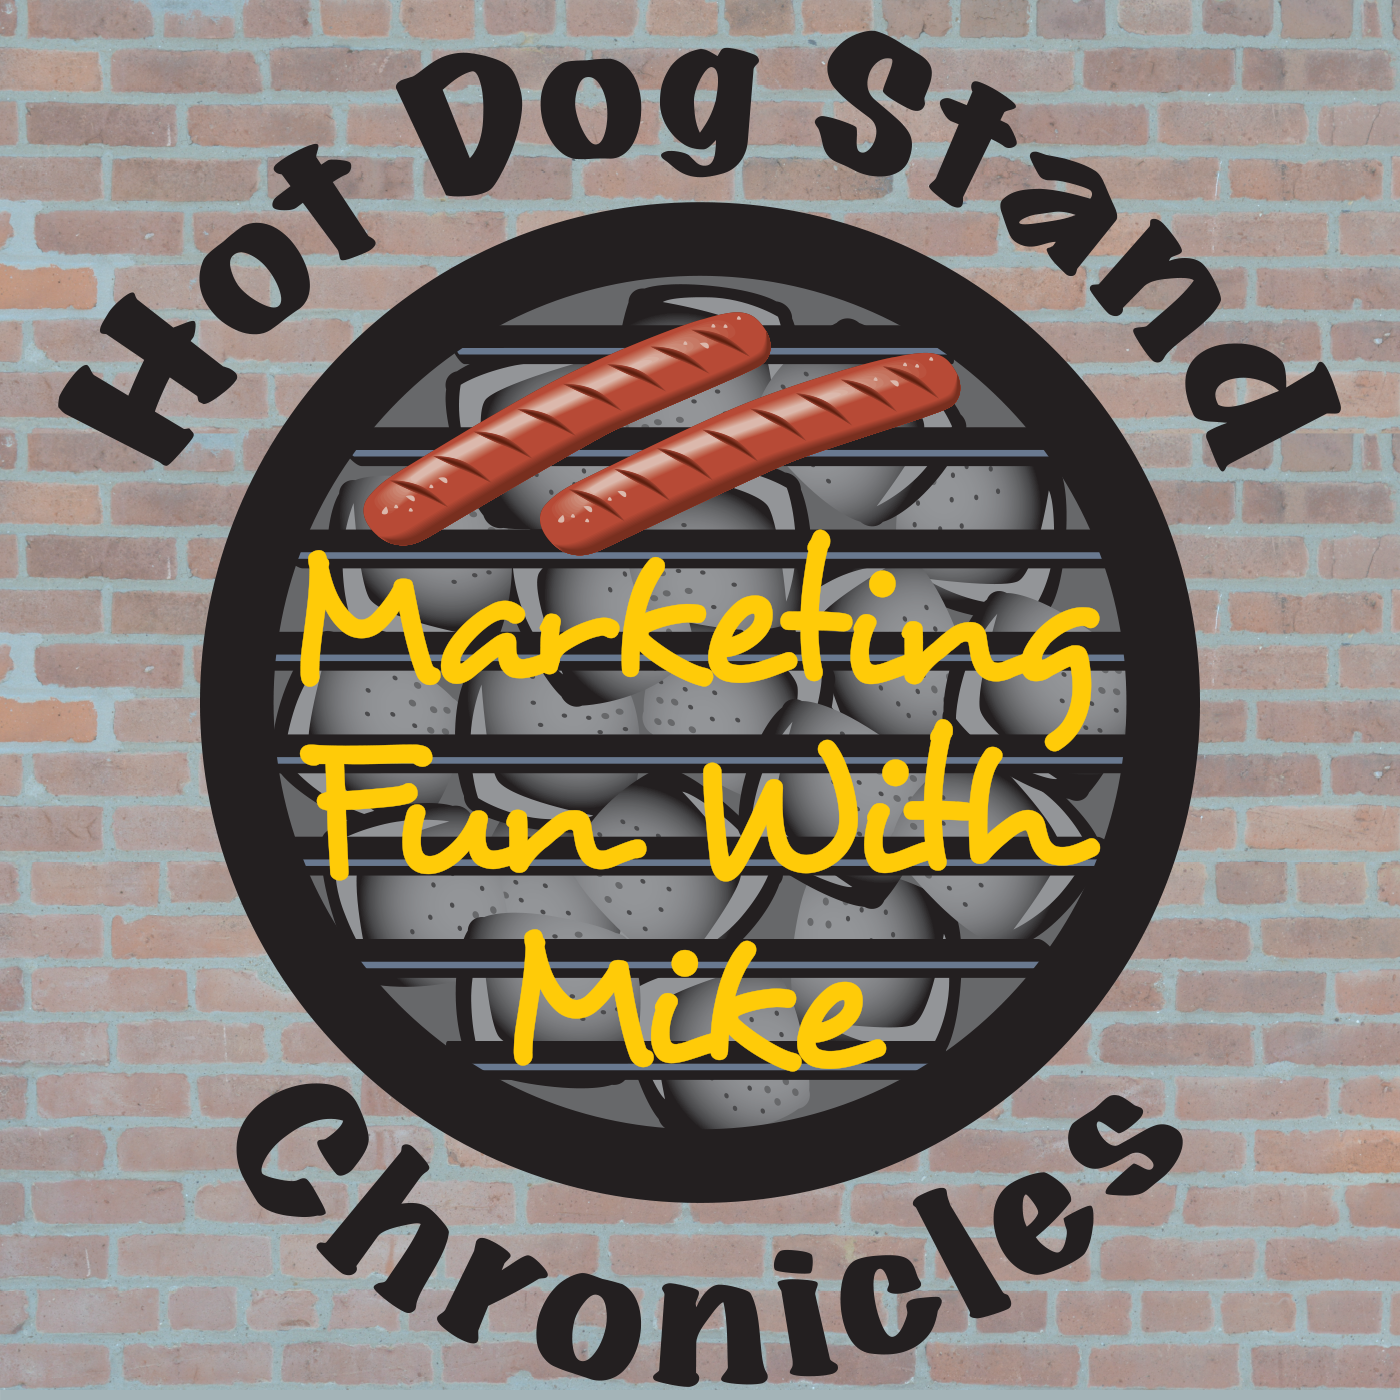 Hot Dog Stand Chronicles - Marketing Fun With Mike